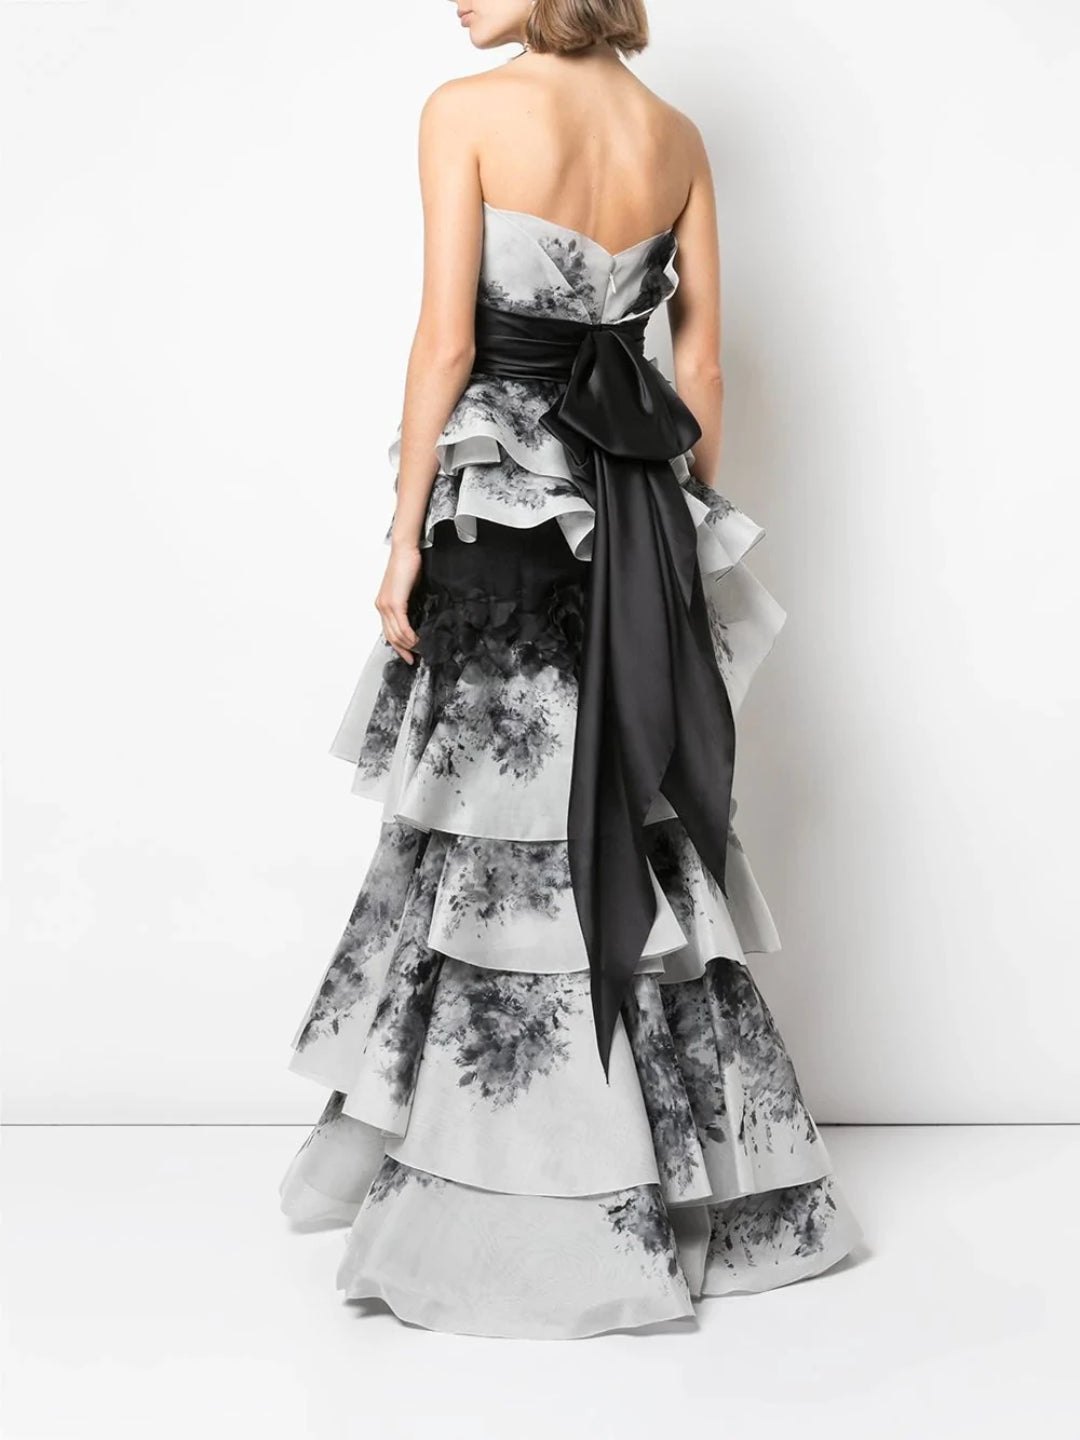 Strapless Tiered Gown With Sash